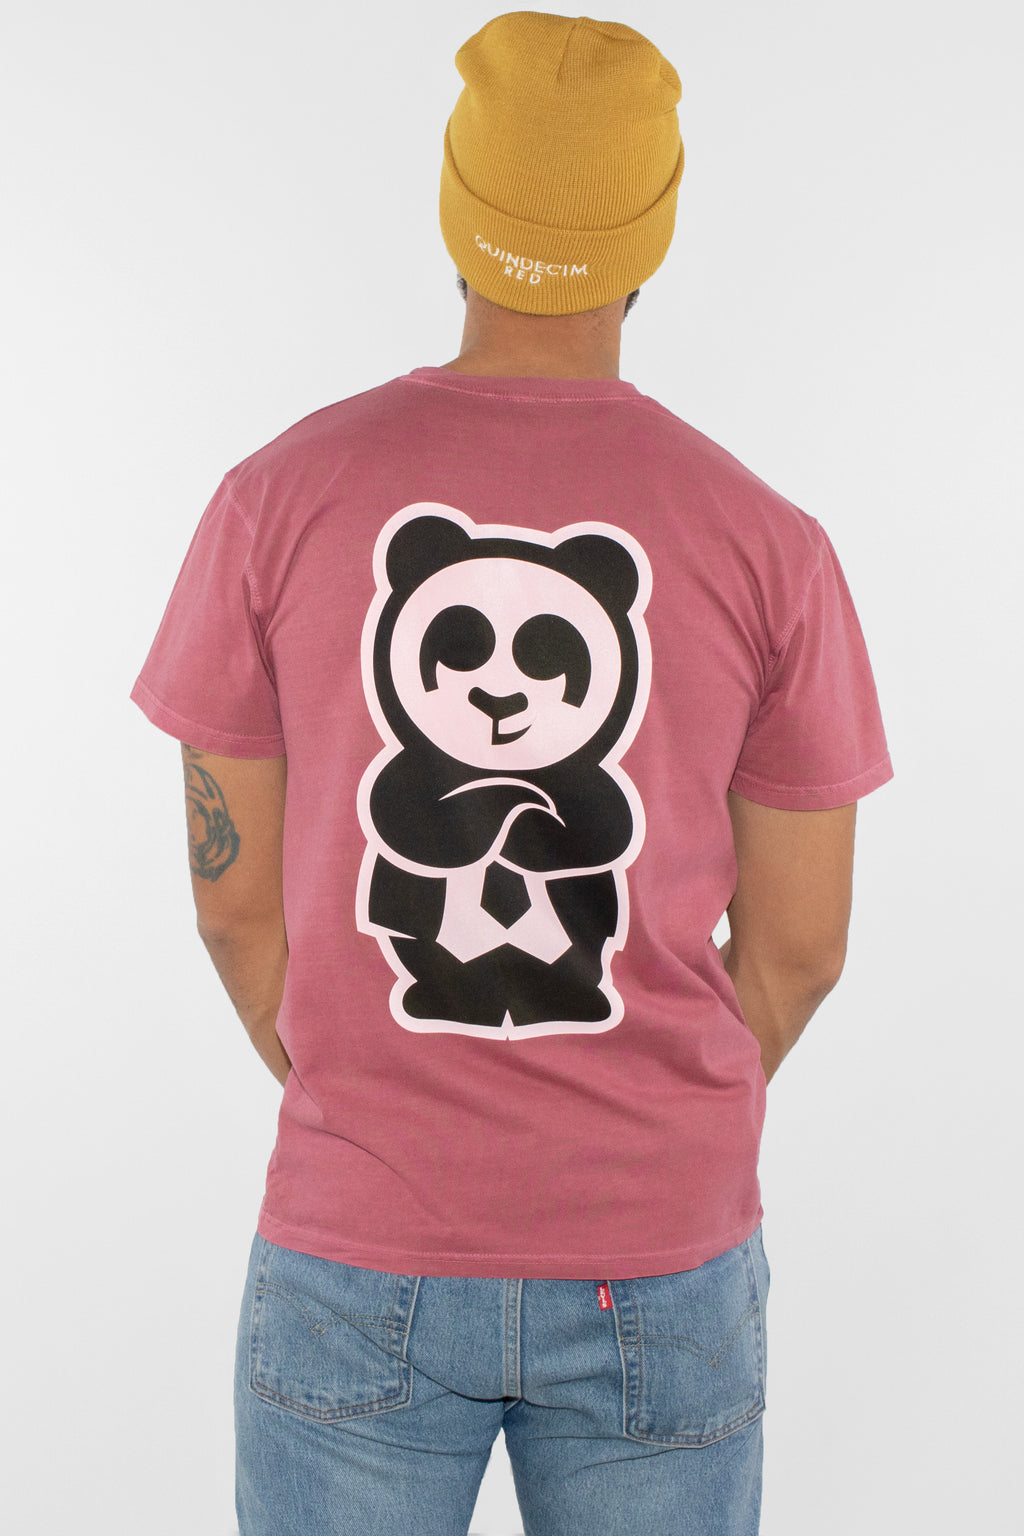 Giant Panda Fam Tee (Vintage Pink) - Quindecim Red